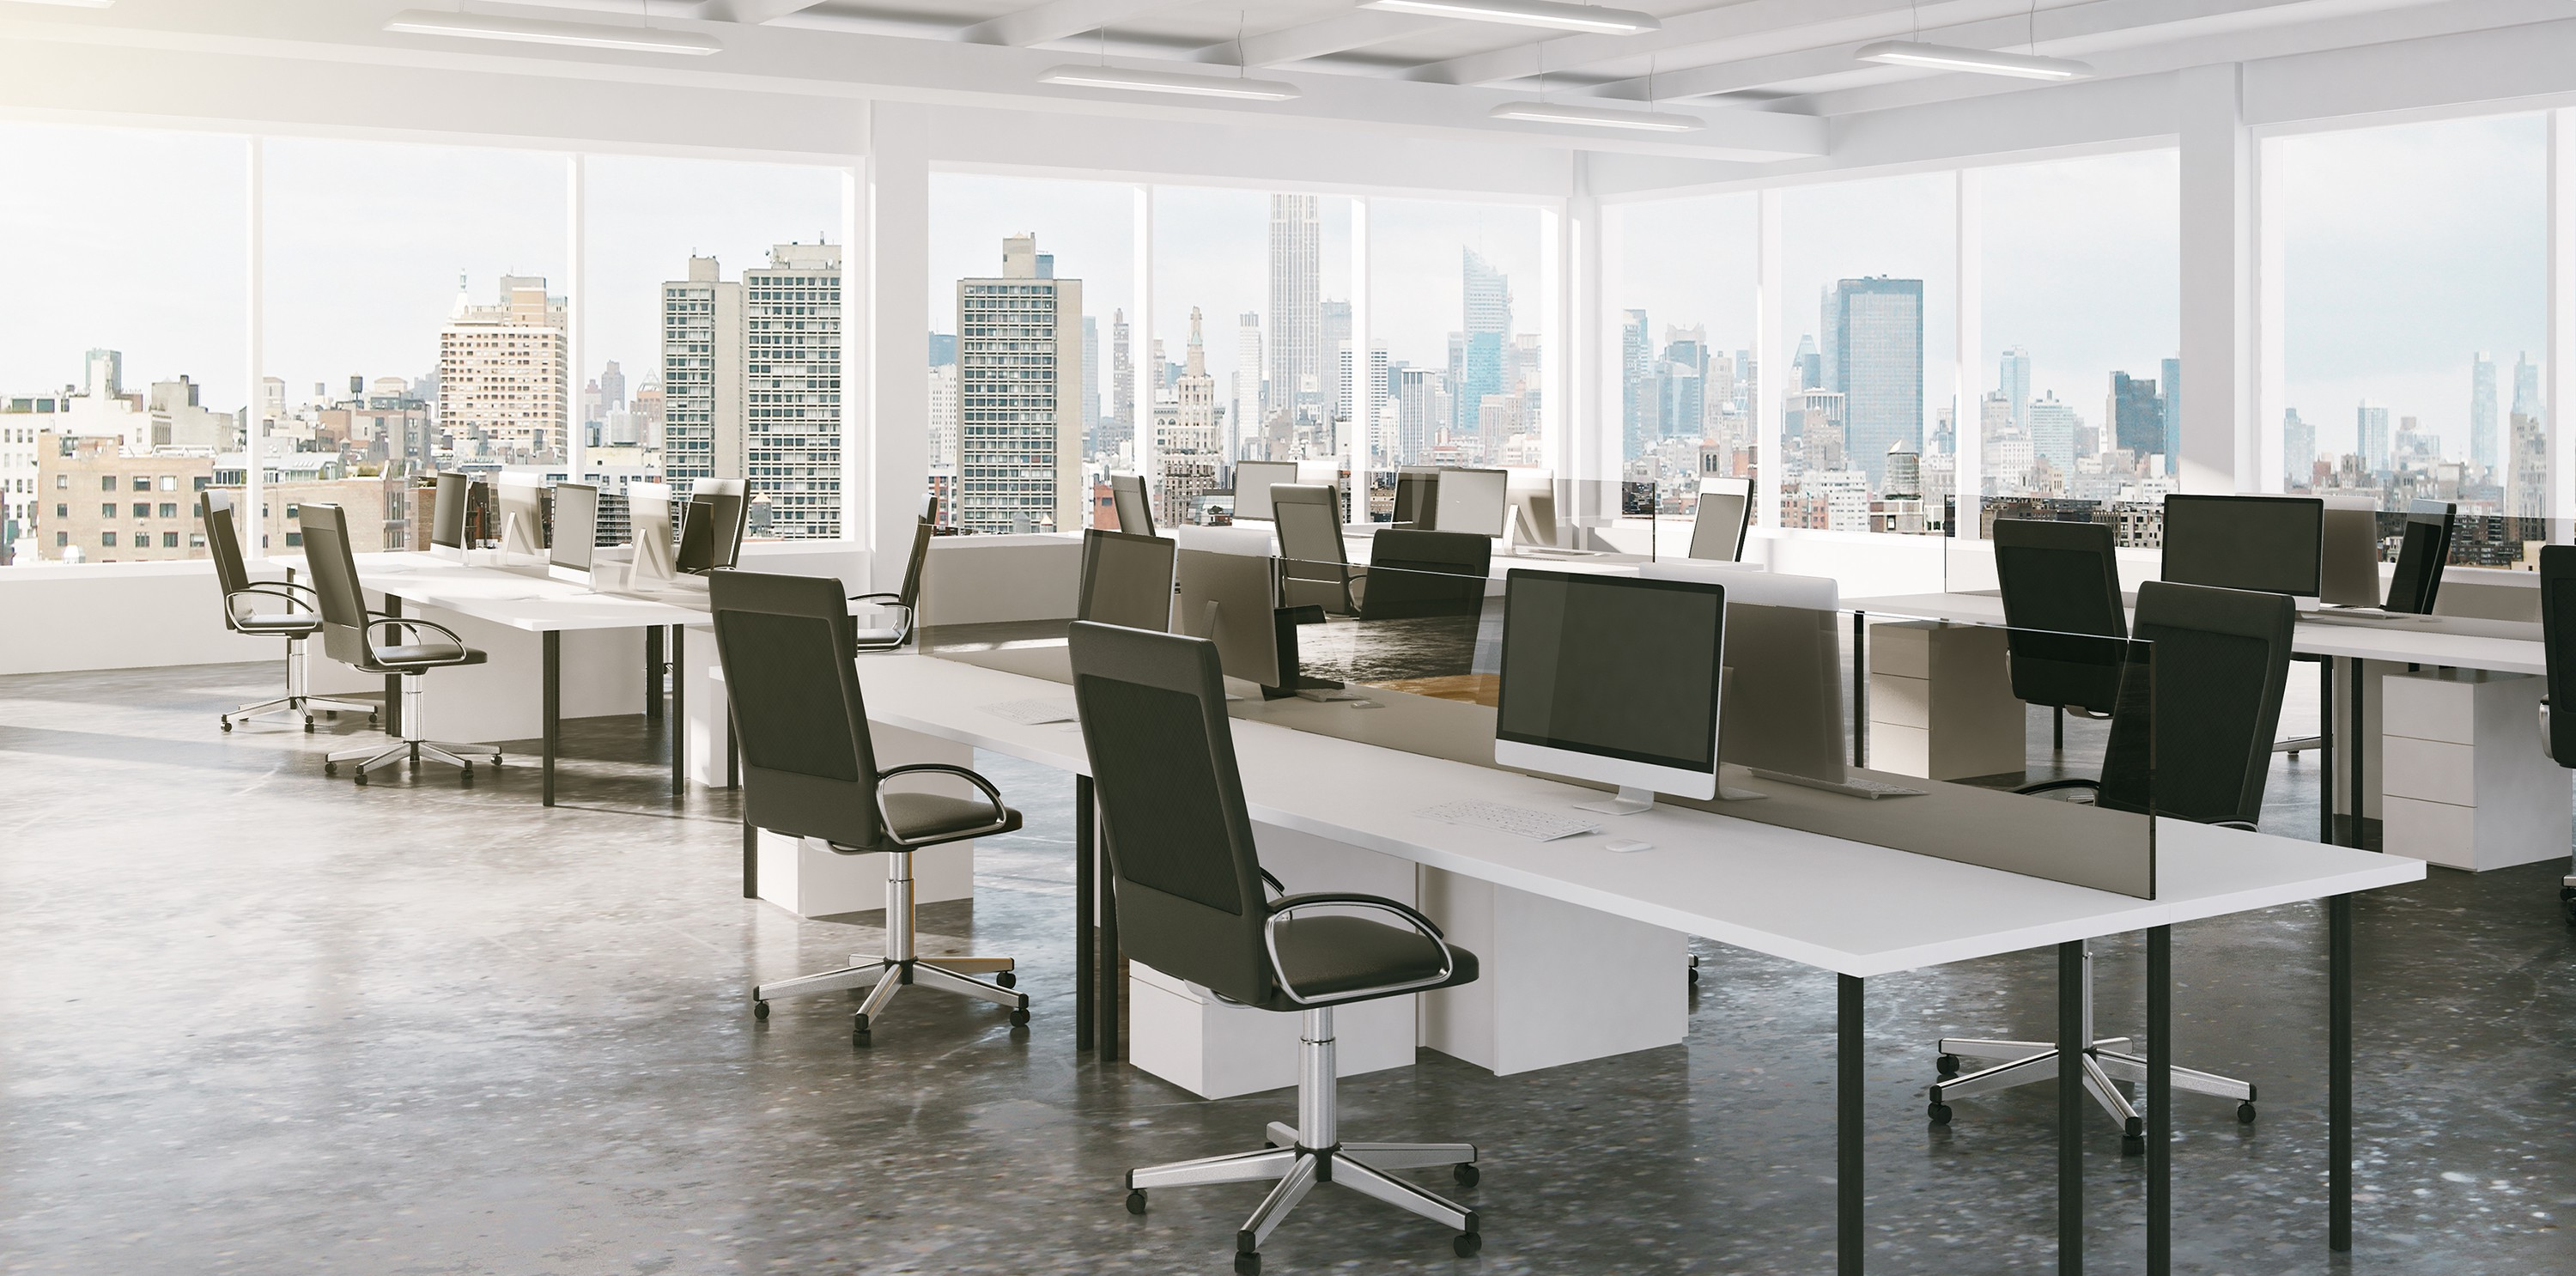 Covid-19 has made centralized systems (including offices) vulnerable. Image of an empty Manhattan office.